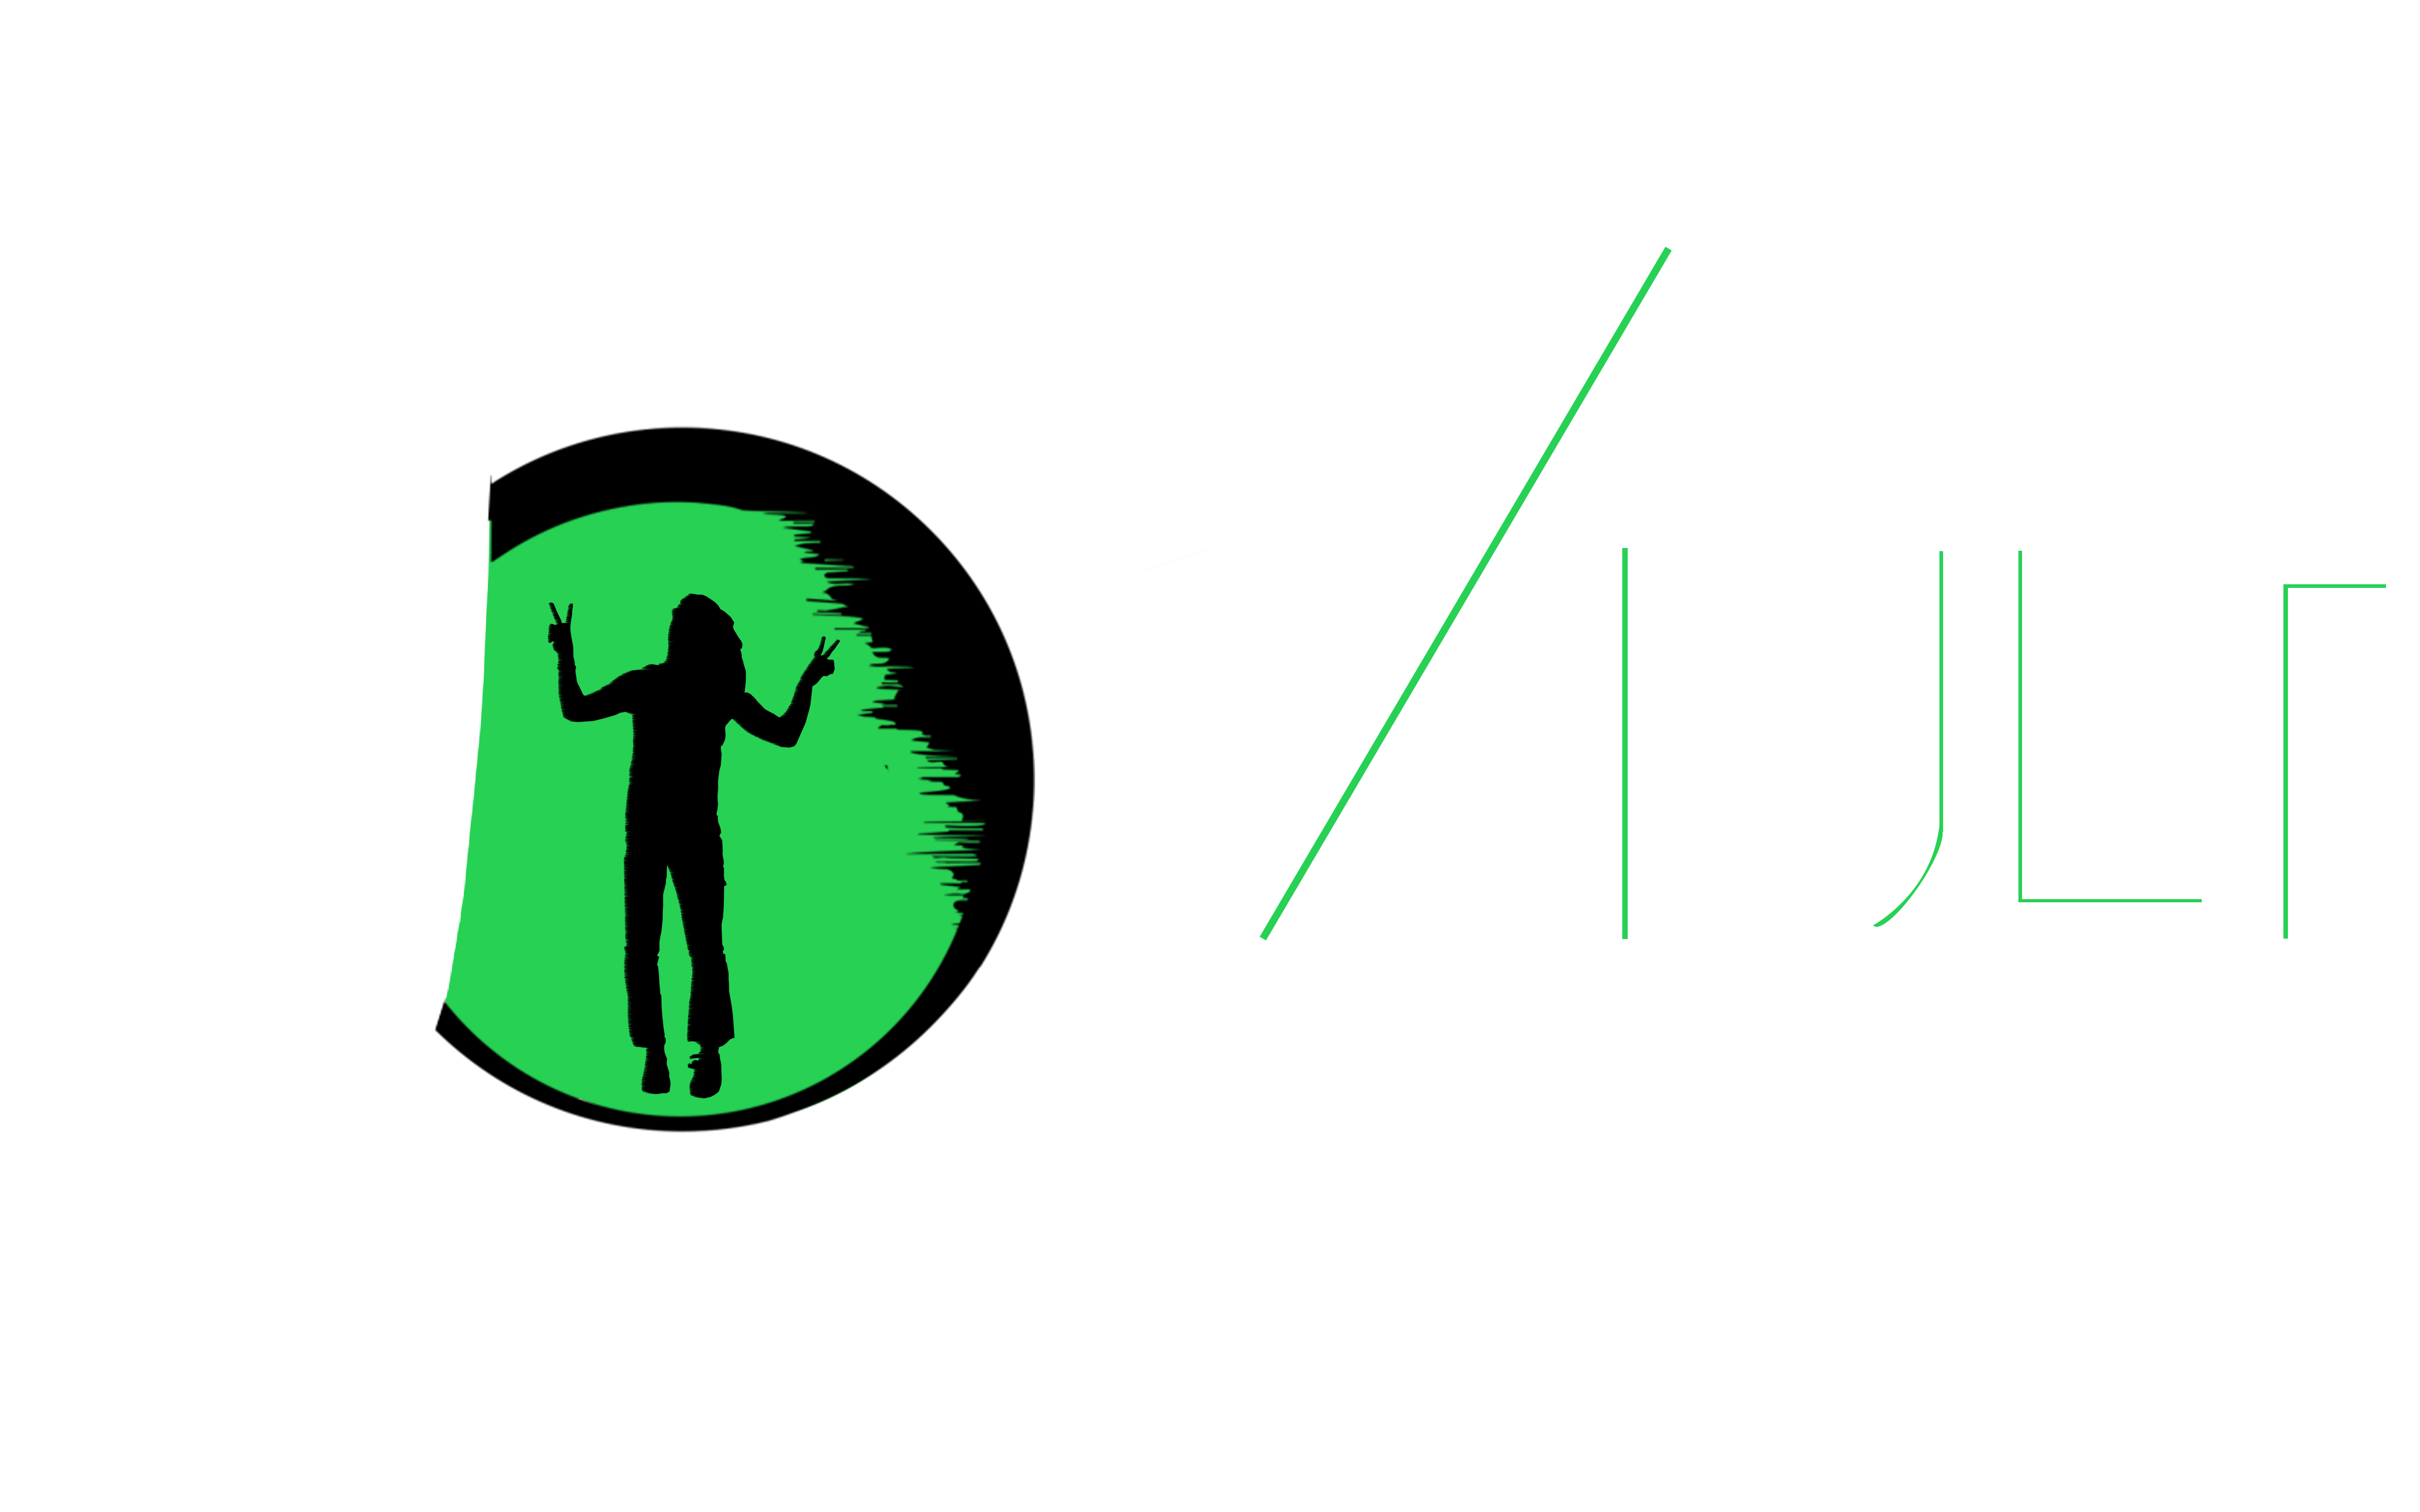 The Vault Dance Studio